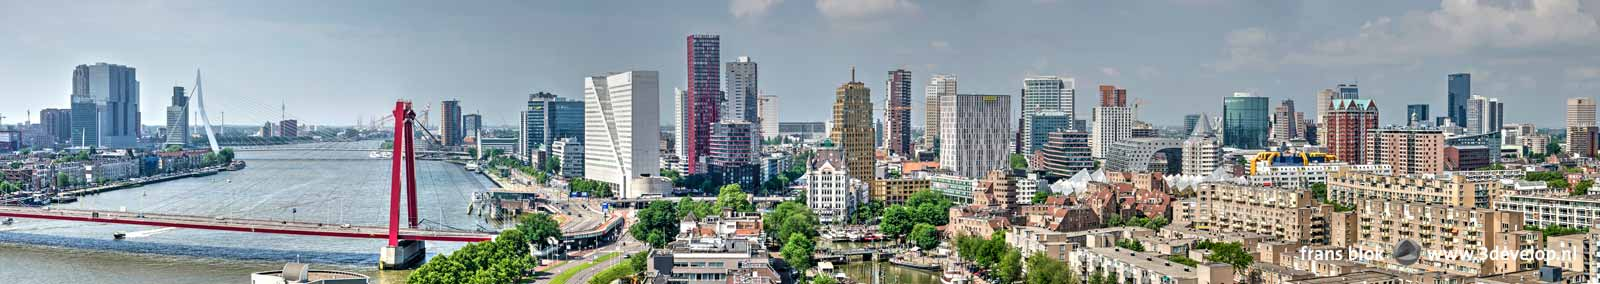 Panoramic view of the Rotterdam skyline seen from the student's appartment tower de Hoge Wiek during the Rooftop Days of 2018, including De Rotterdam building, Erasmus and Willems bridges, the White House and Markthal